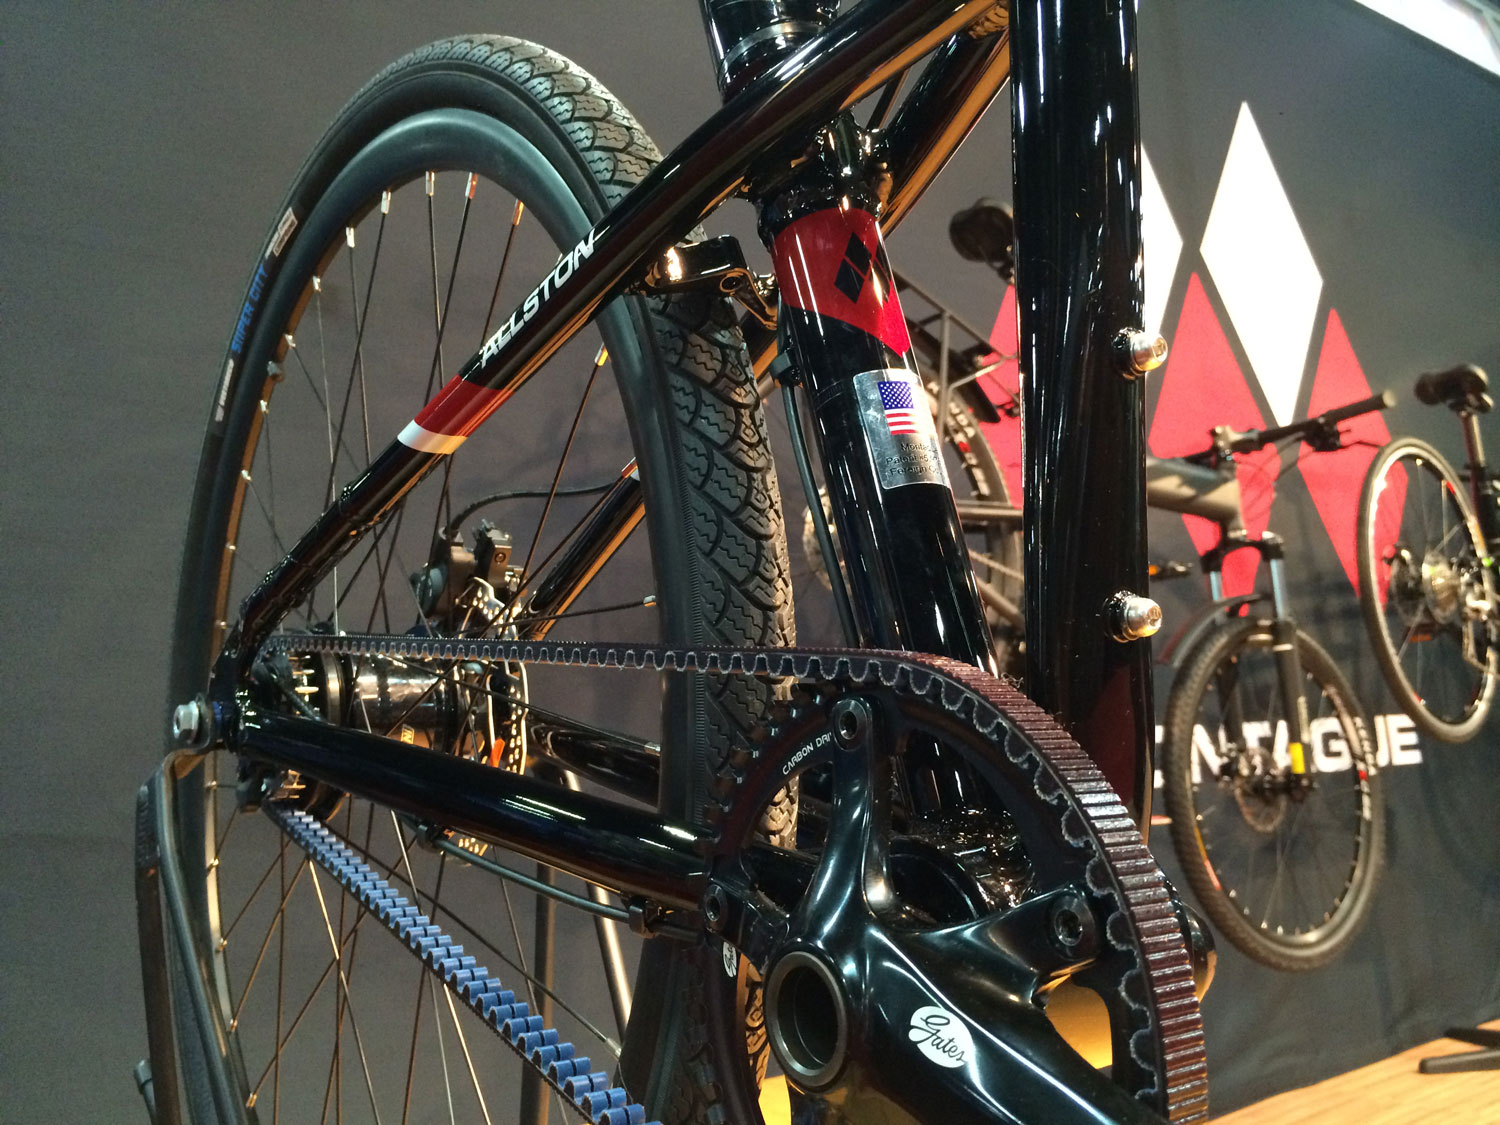 Montague Allston Belt Drive Folding bike at Interbike 2015